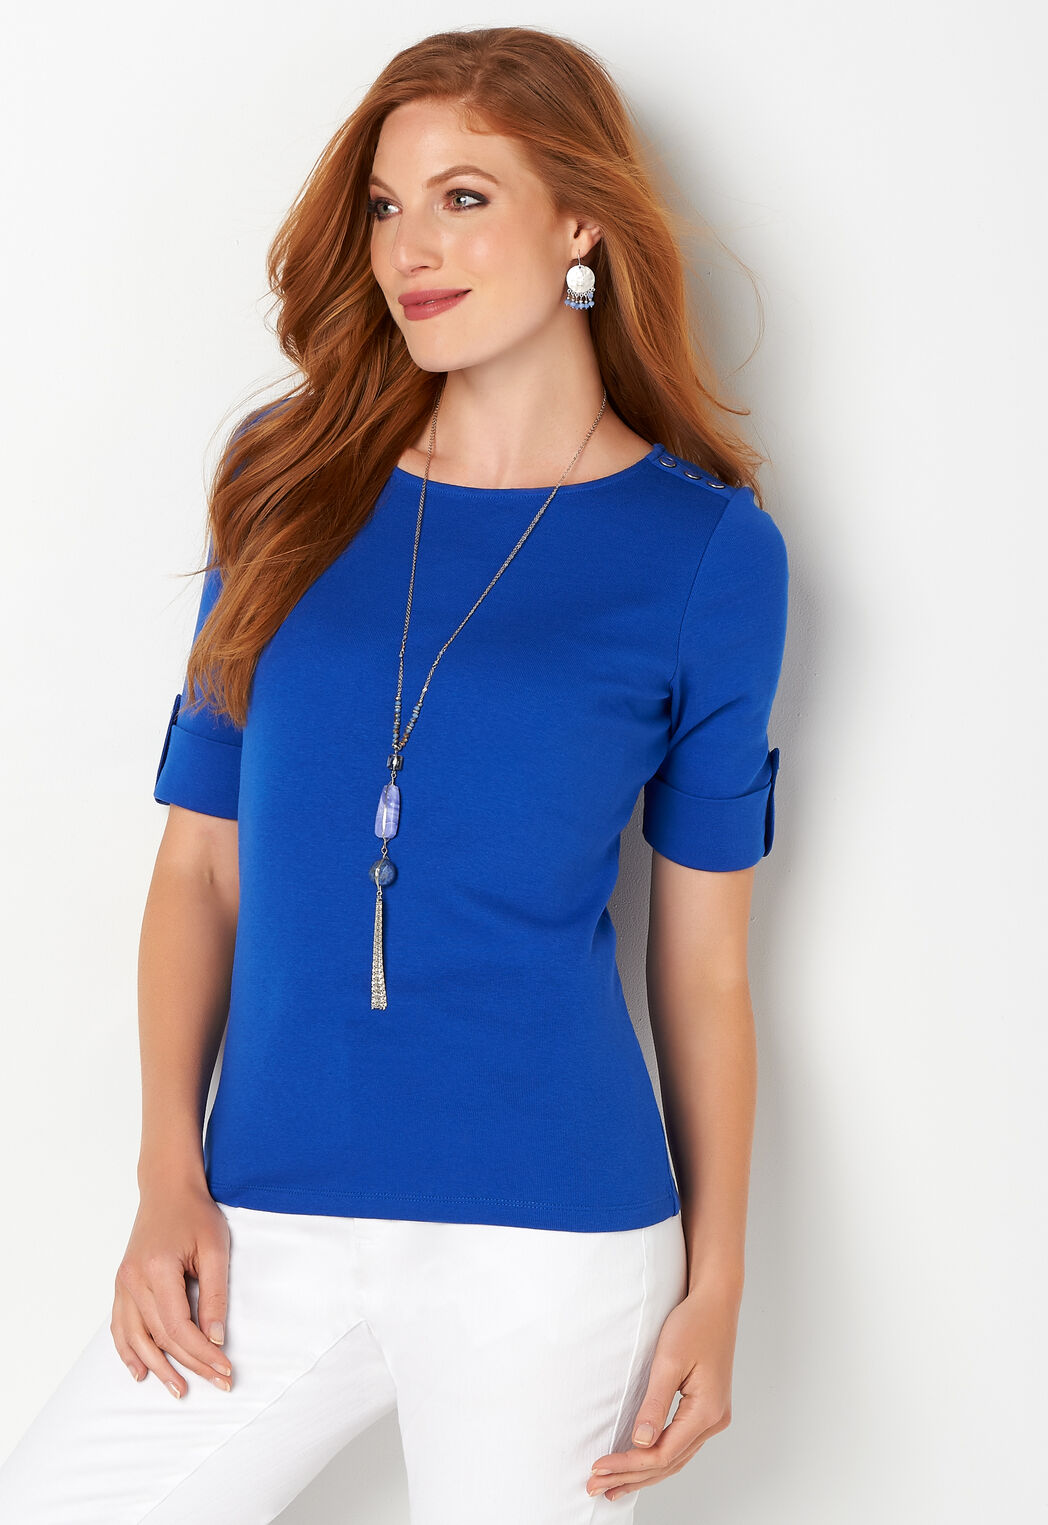 e6692fb9 ... Solid Elbow Sleeve Shoulder Detail Boatneck. add to wish list · add to  wish list